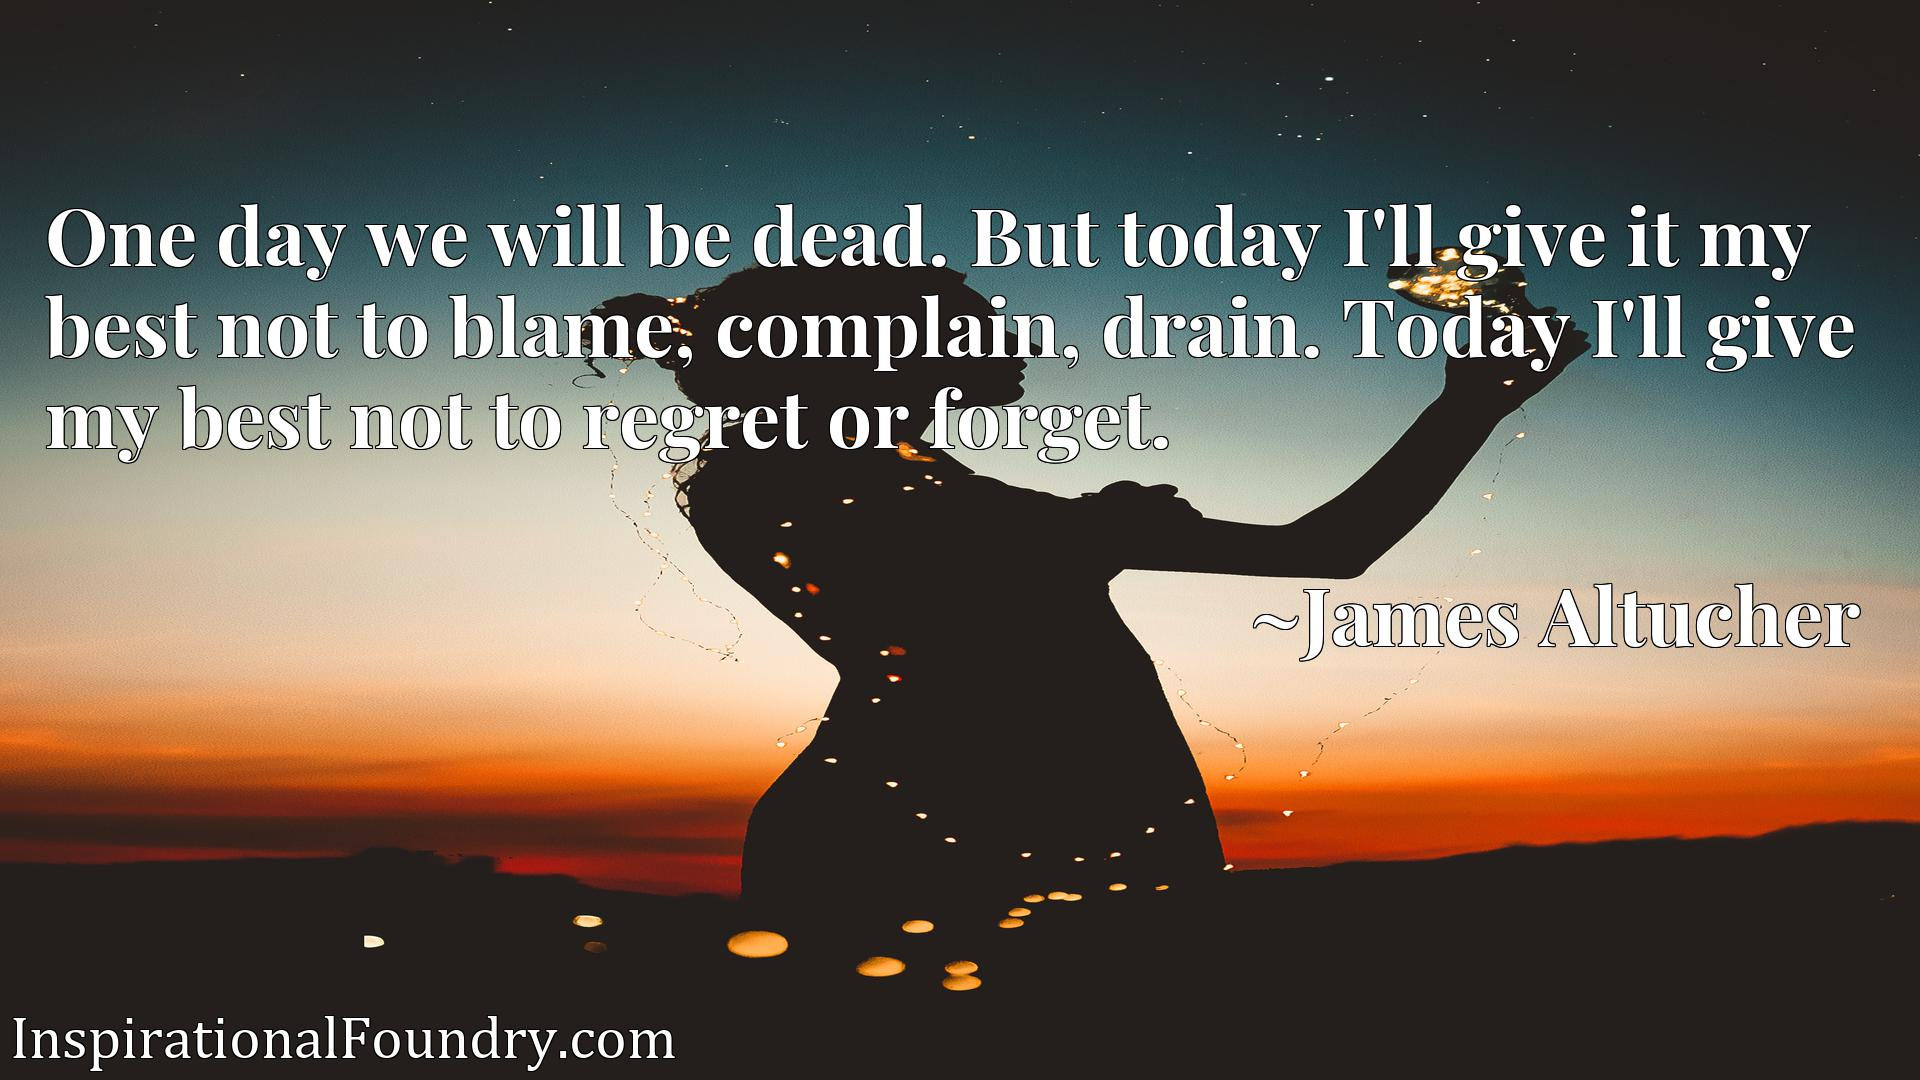 One day we will be dead. But today I'll give it my best not to blame, complain, drain. Today I'll give my best not to regret or forget.